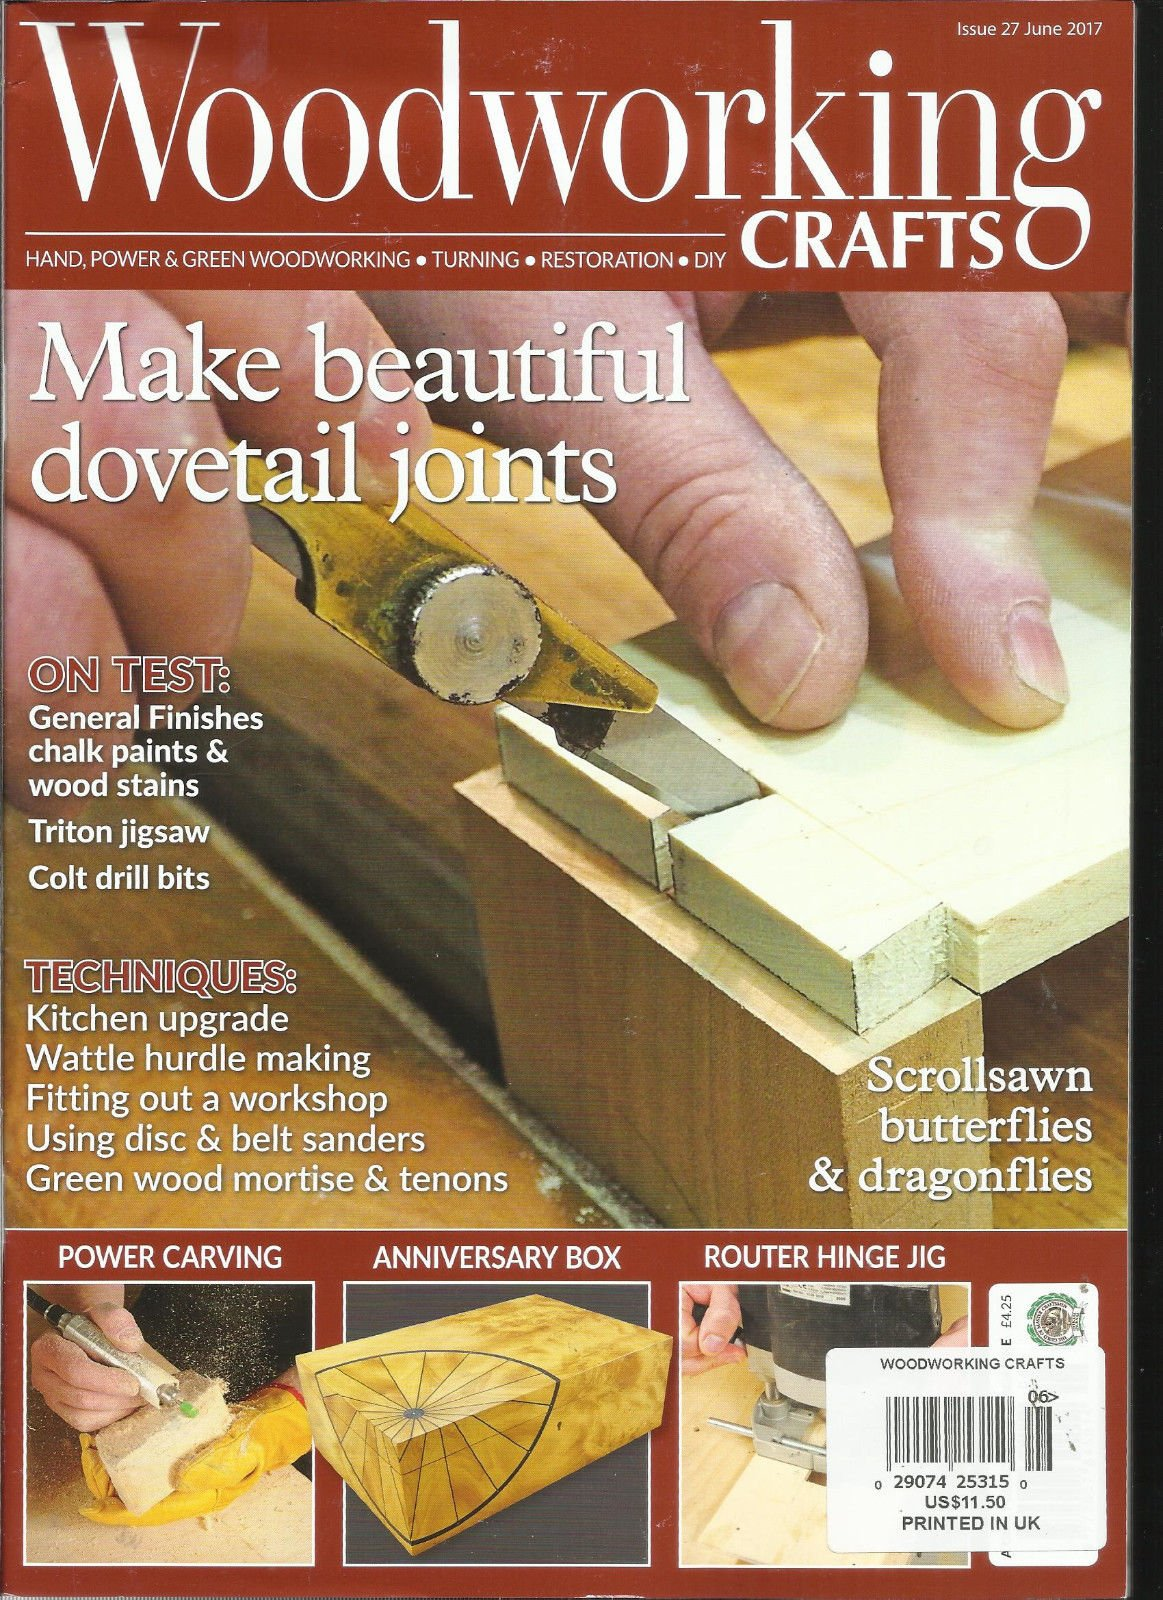 WOOD WORKING CRAFTS MAGAZINE, HAND POWER & GREEN WOODWORKING JUNE, 2017# 27